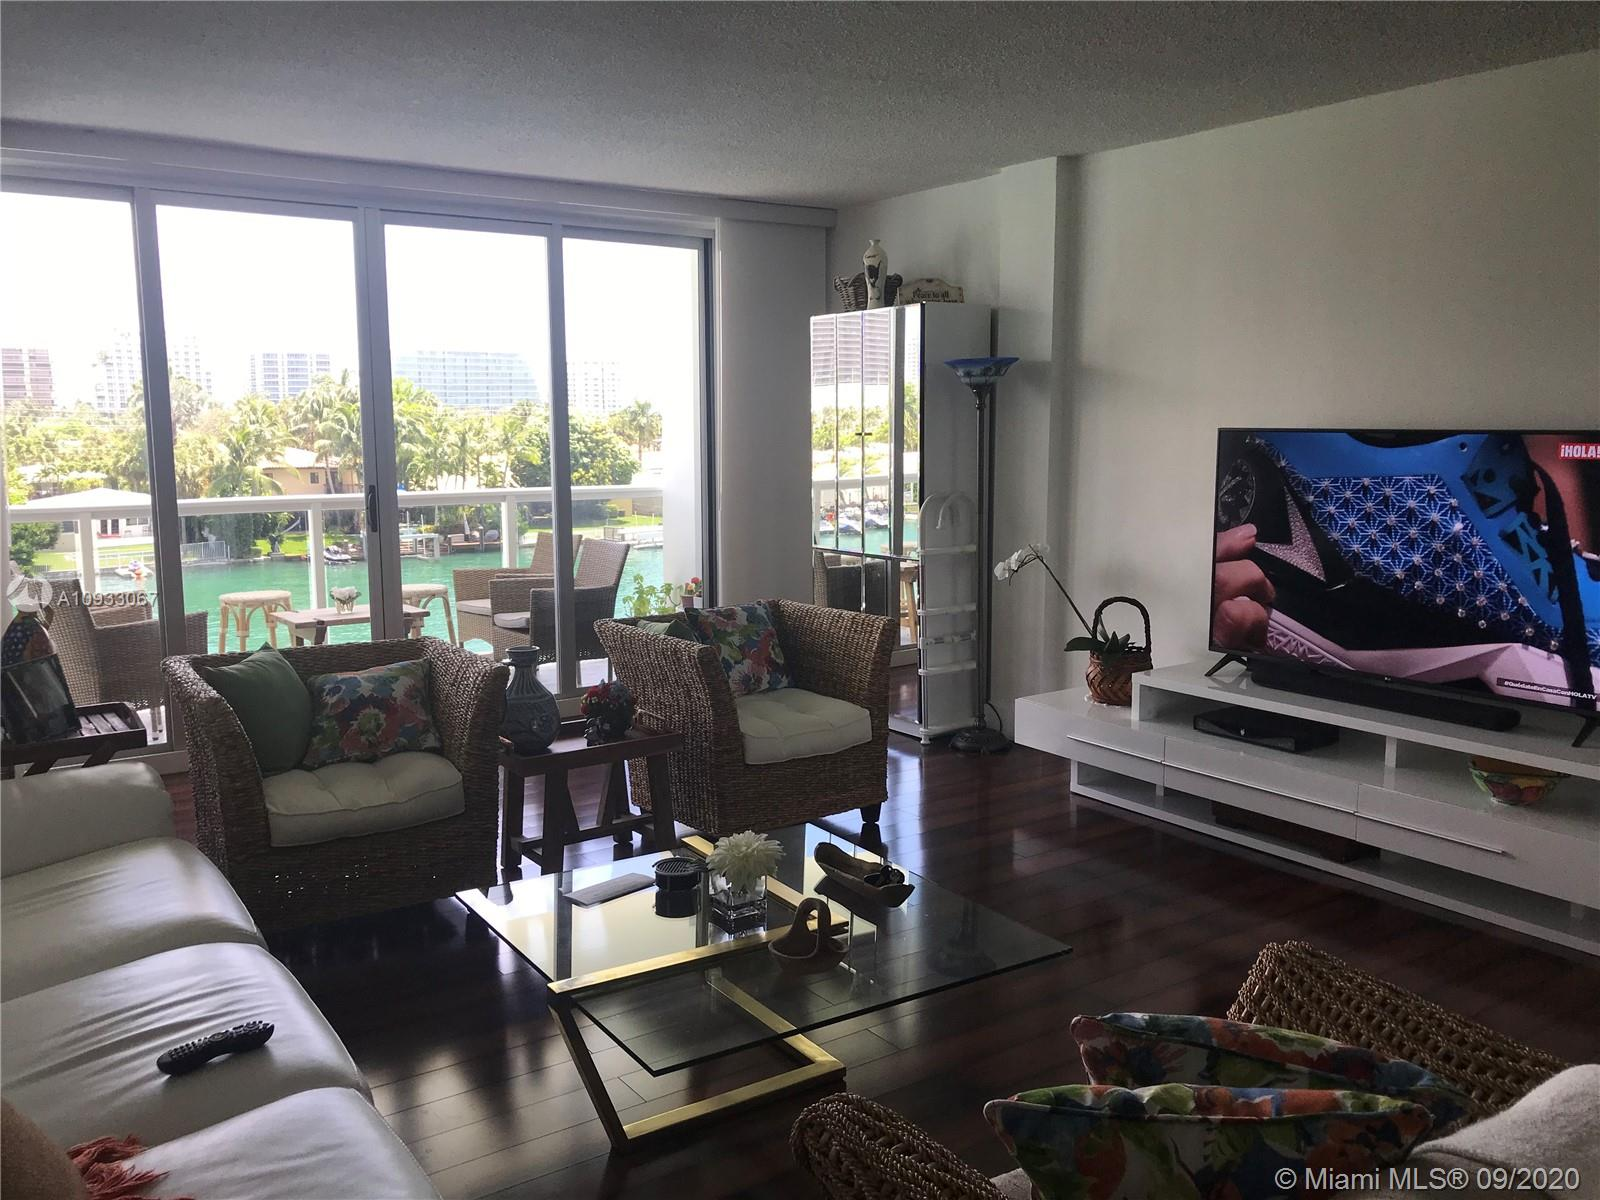 LOVELY  AND SPACIOUS APARTMENT ON BAY HARBOR ISLAND,  SPECTACULAR VIEWS FROM EVERY ROOM OVERLOOKING WATERWAYS.